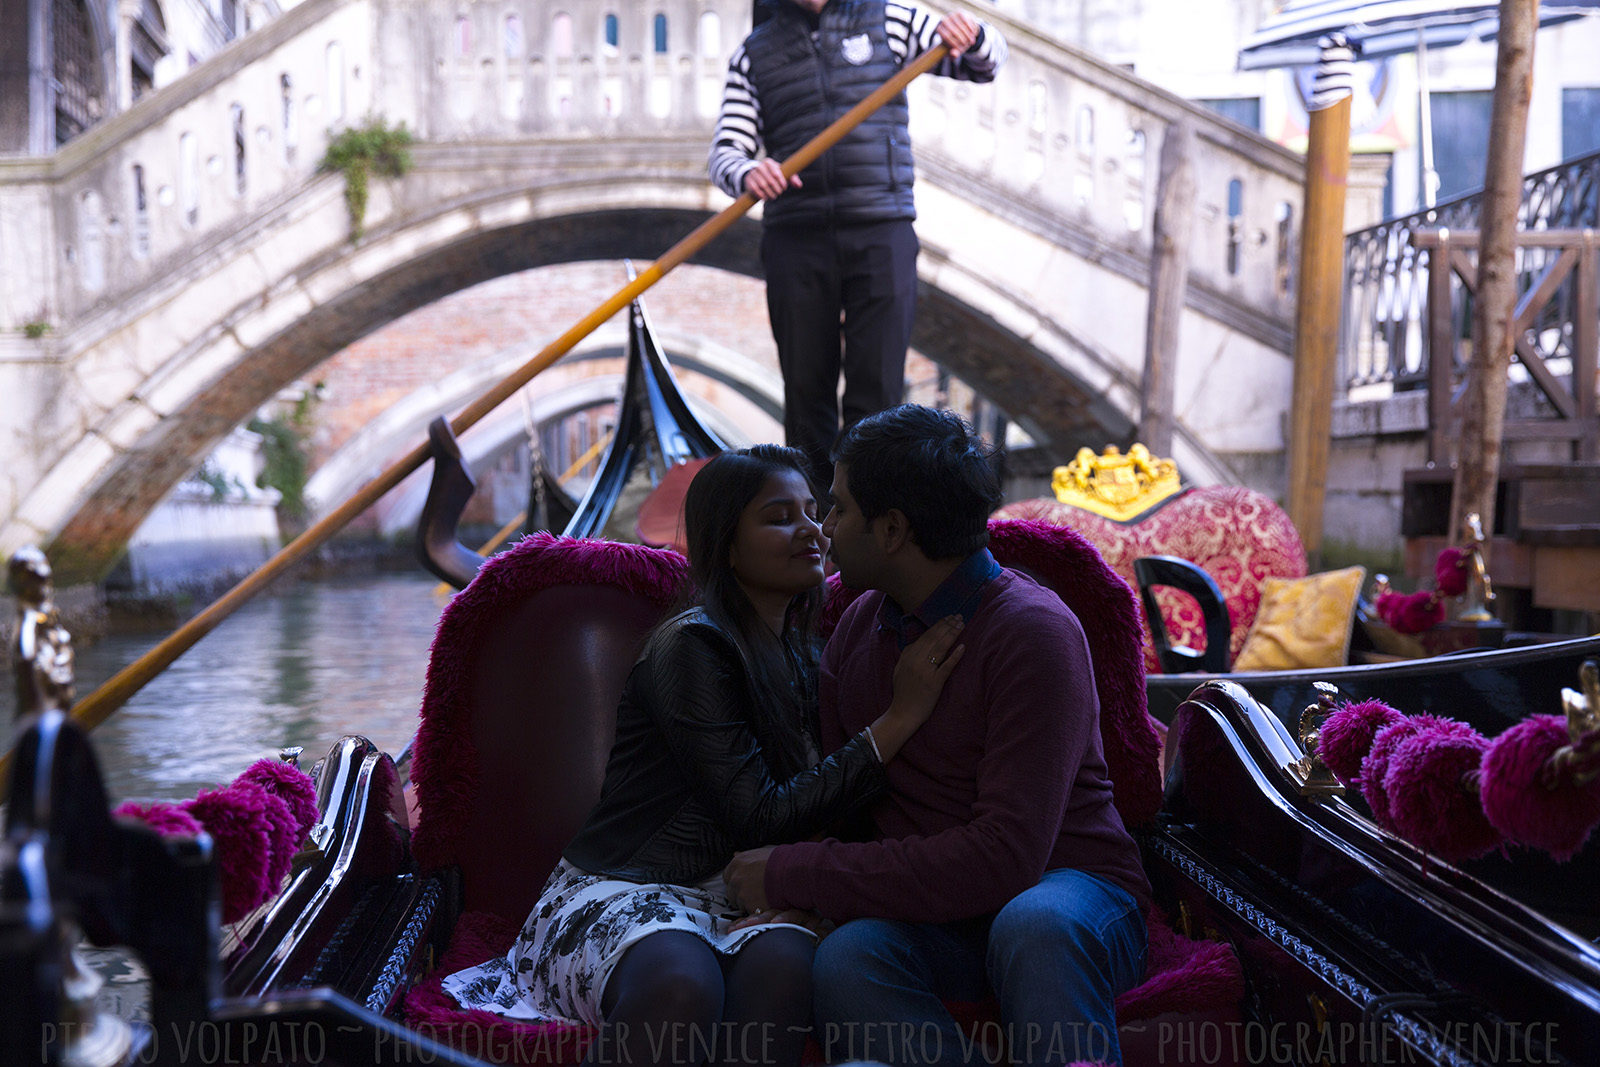 Photographer in Venice Italy for couple vacation photo shoot during an amazing walking tour and gondola ride